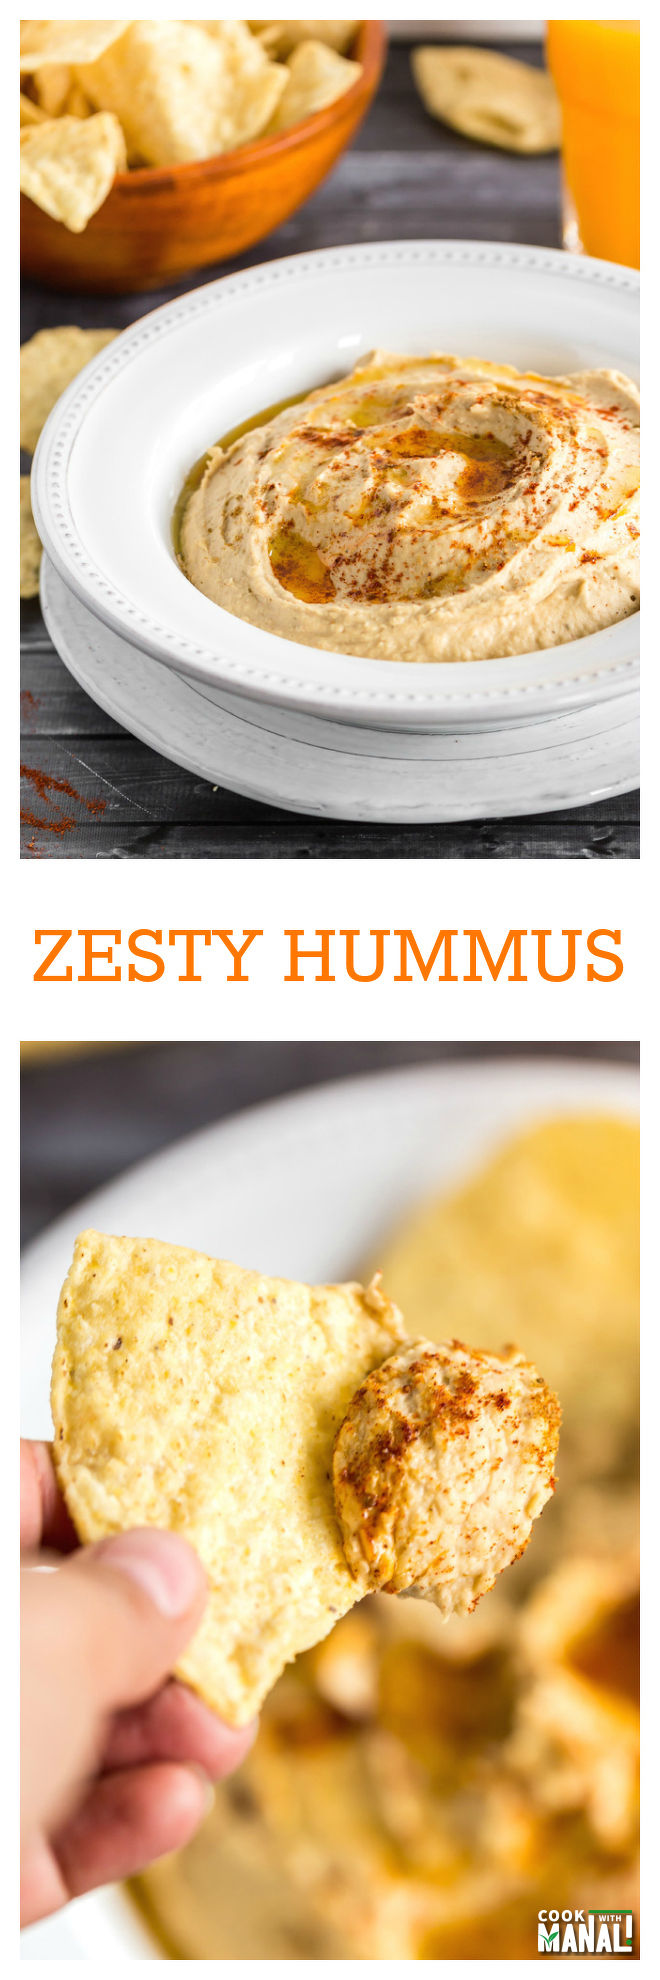 Zesty Hummus Collage